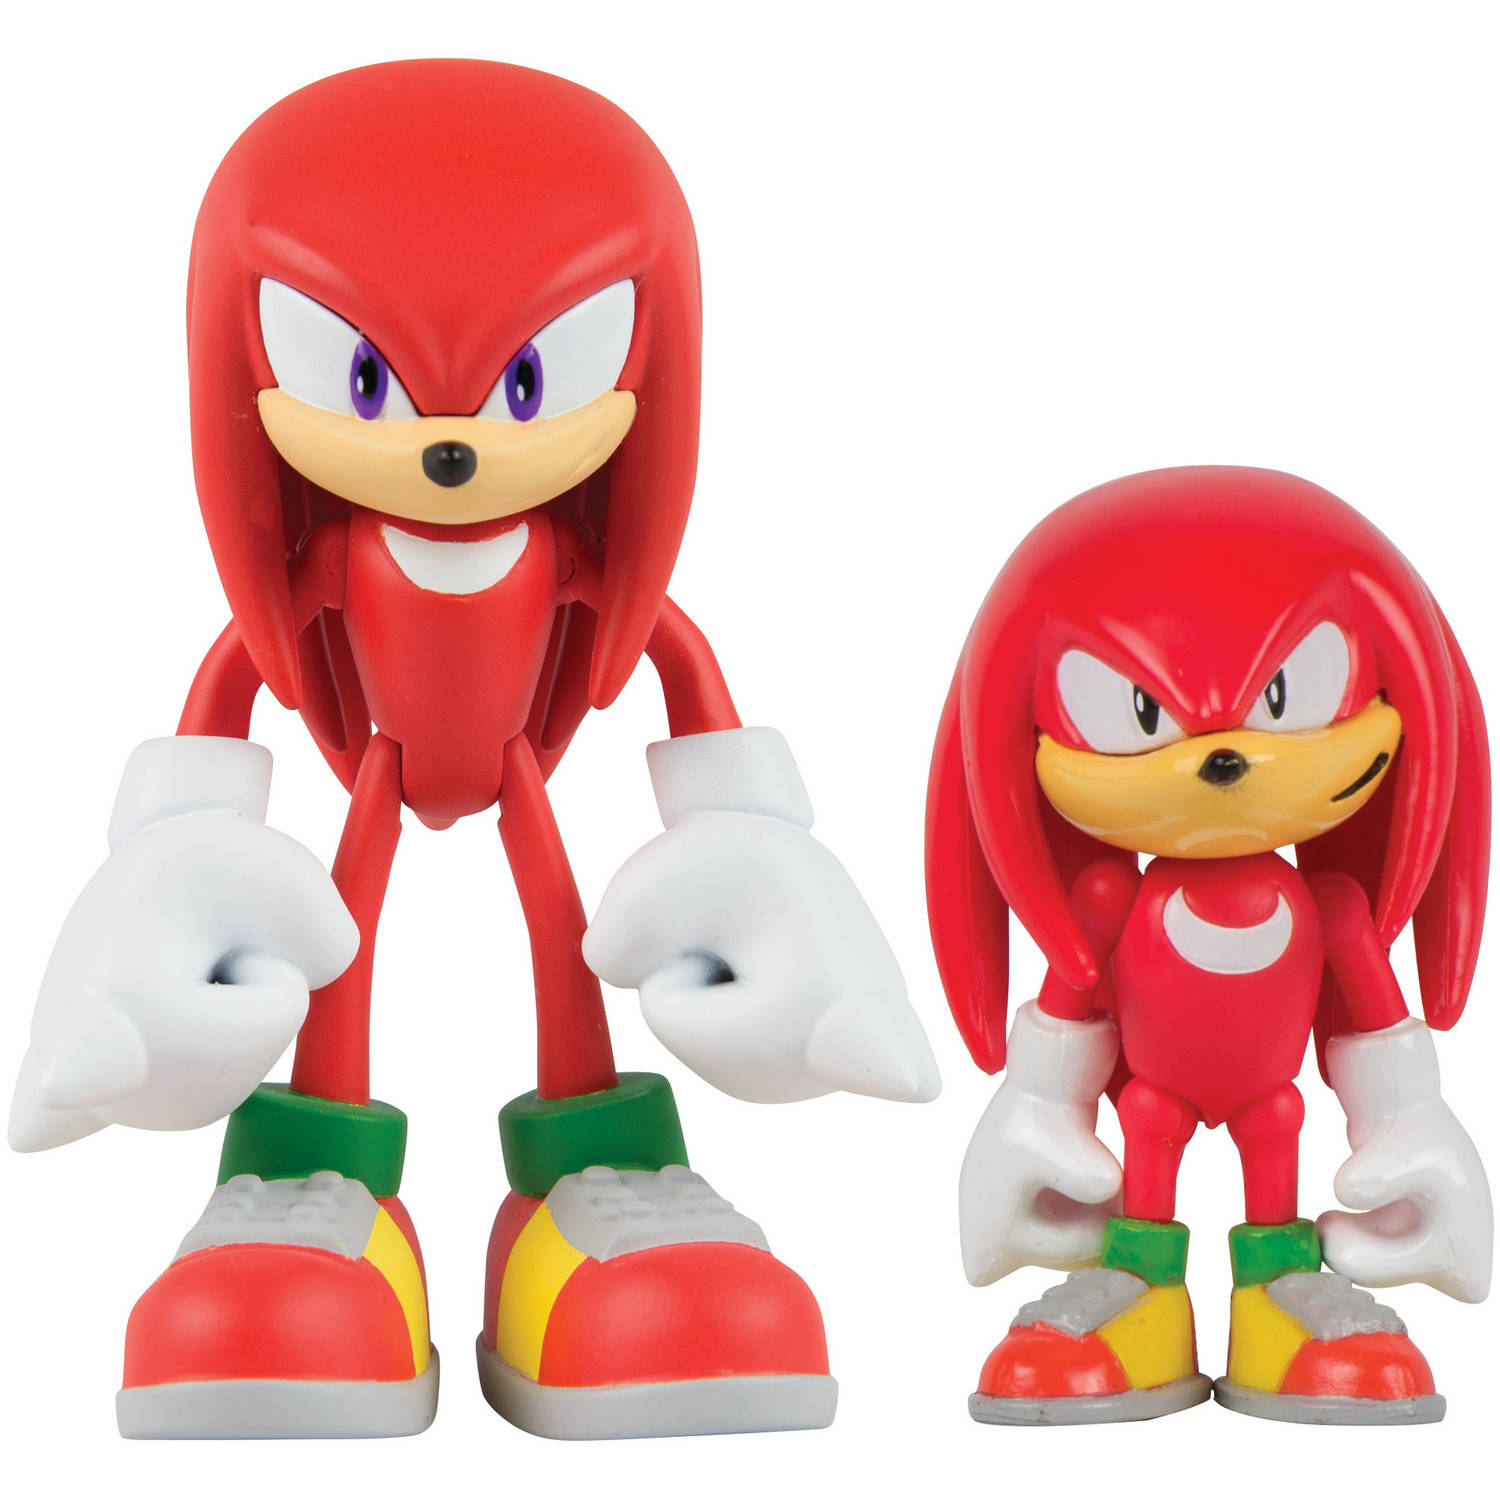 Sonic Collector Series 2-Figure Pack with Comic, Classic Knuckles and Modern Knuckles